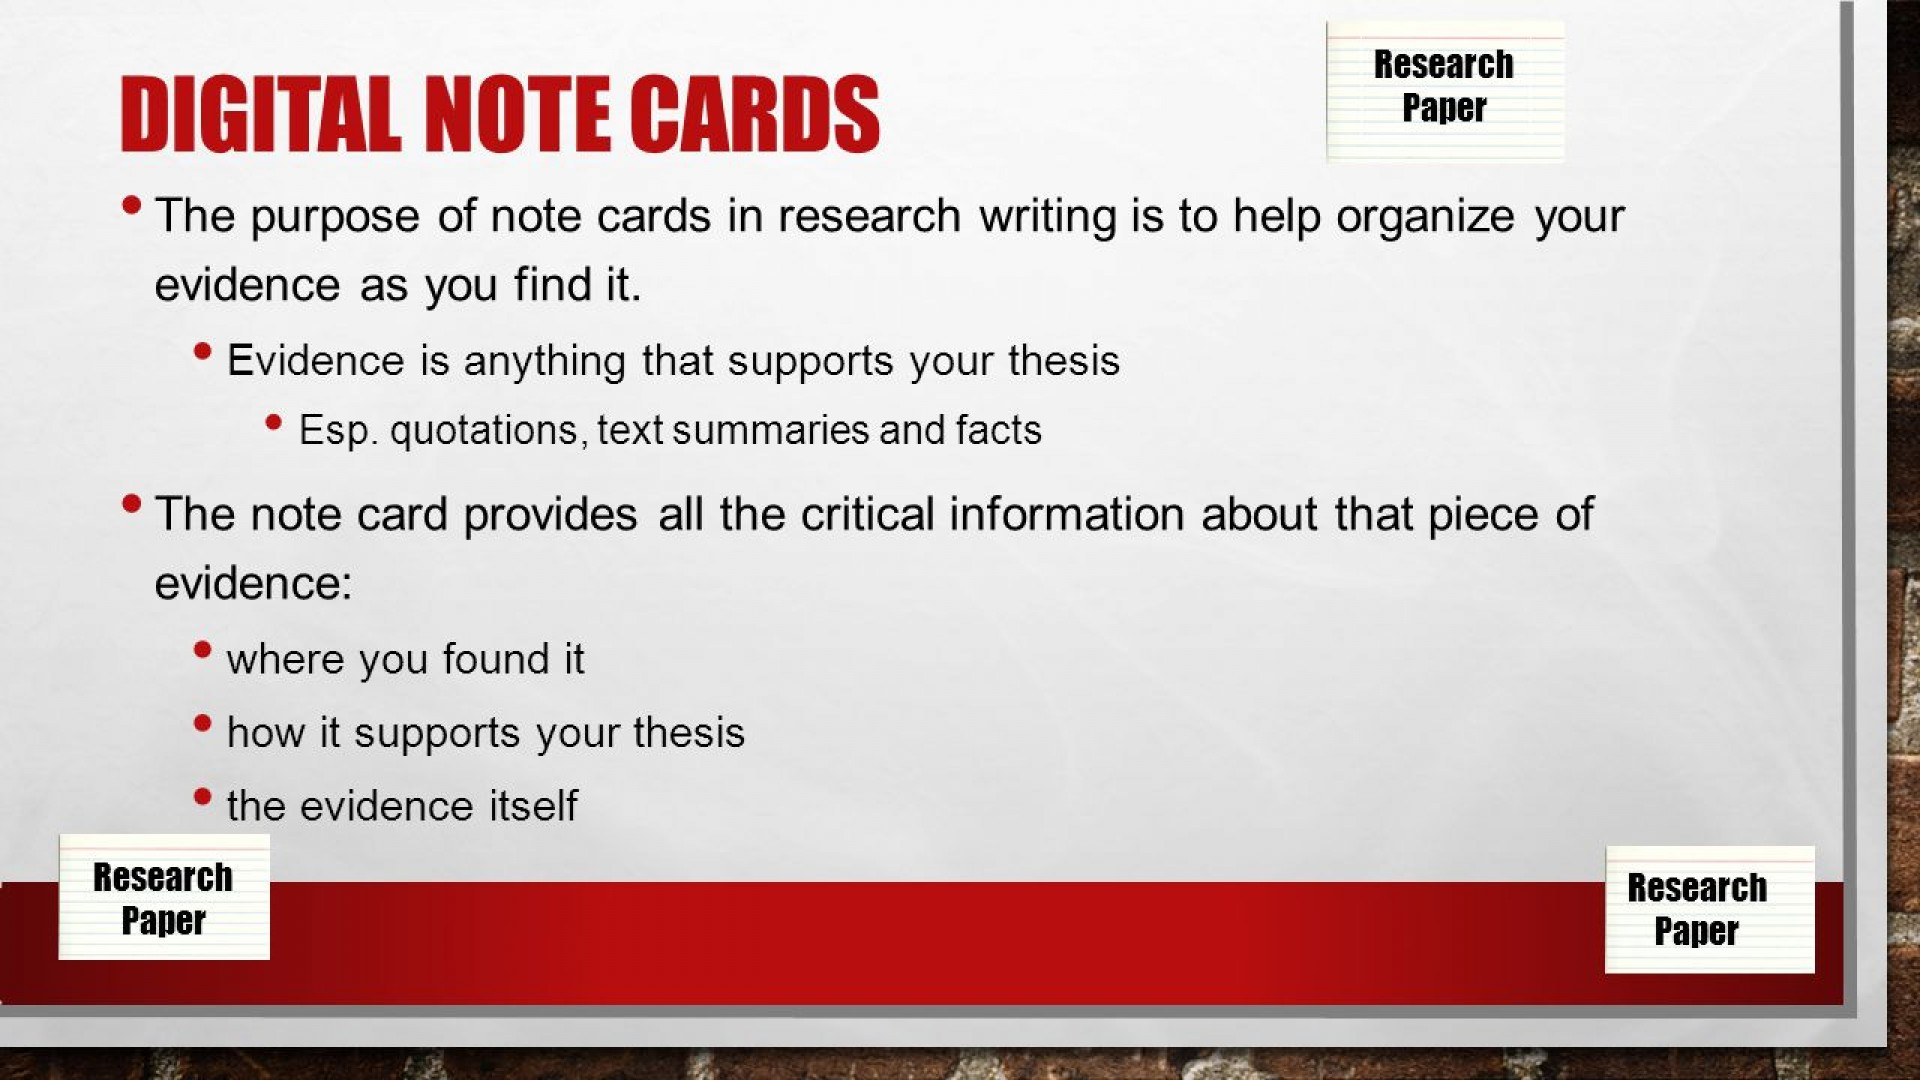 004 Notecards For Research Paper Slide 2 Striking A How To Make Create Do Mla 1920